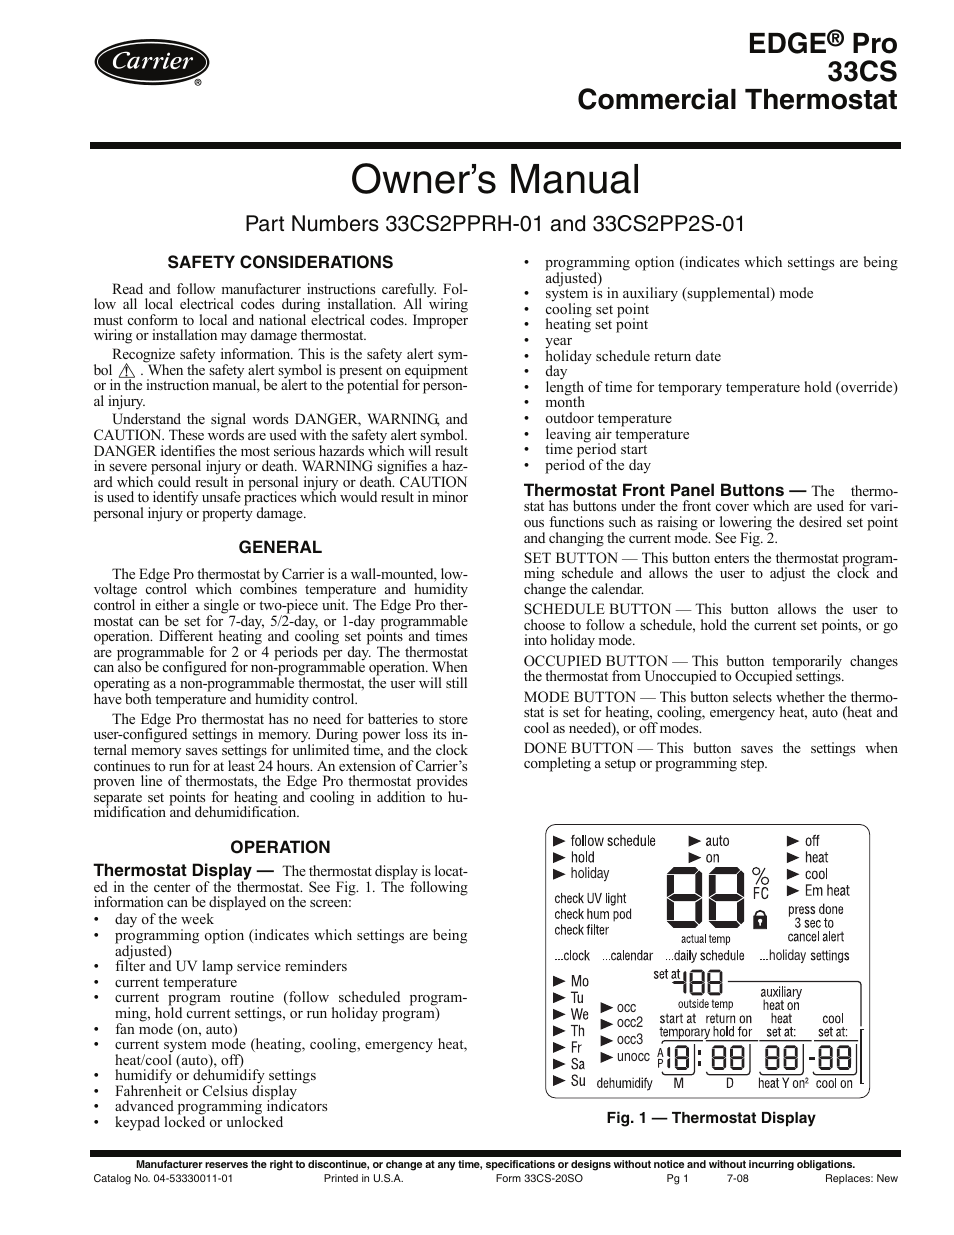 carrier commercial thermostat. carrier edge pro 33cs2pprh-01 user manual | 8 pages also for: 33cs2pp2s-01 commercial thermostat e